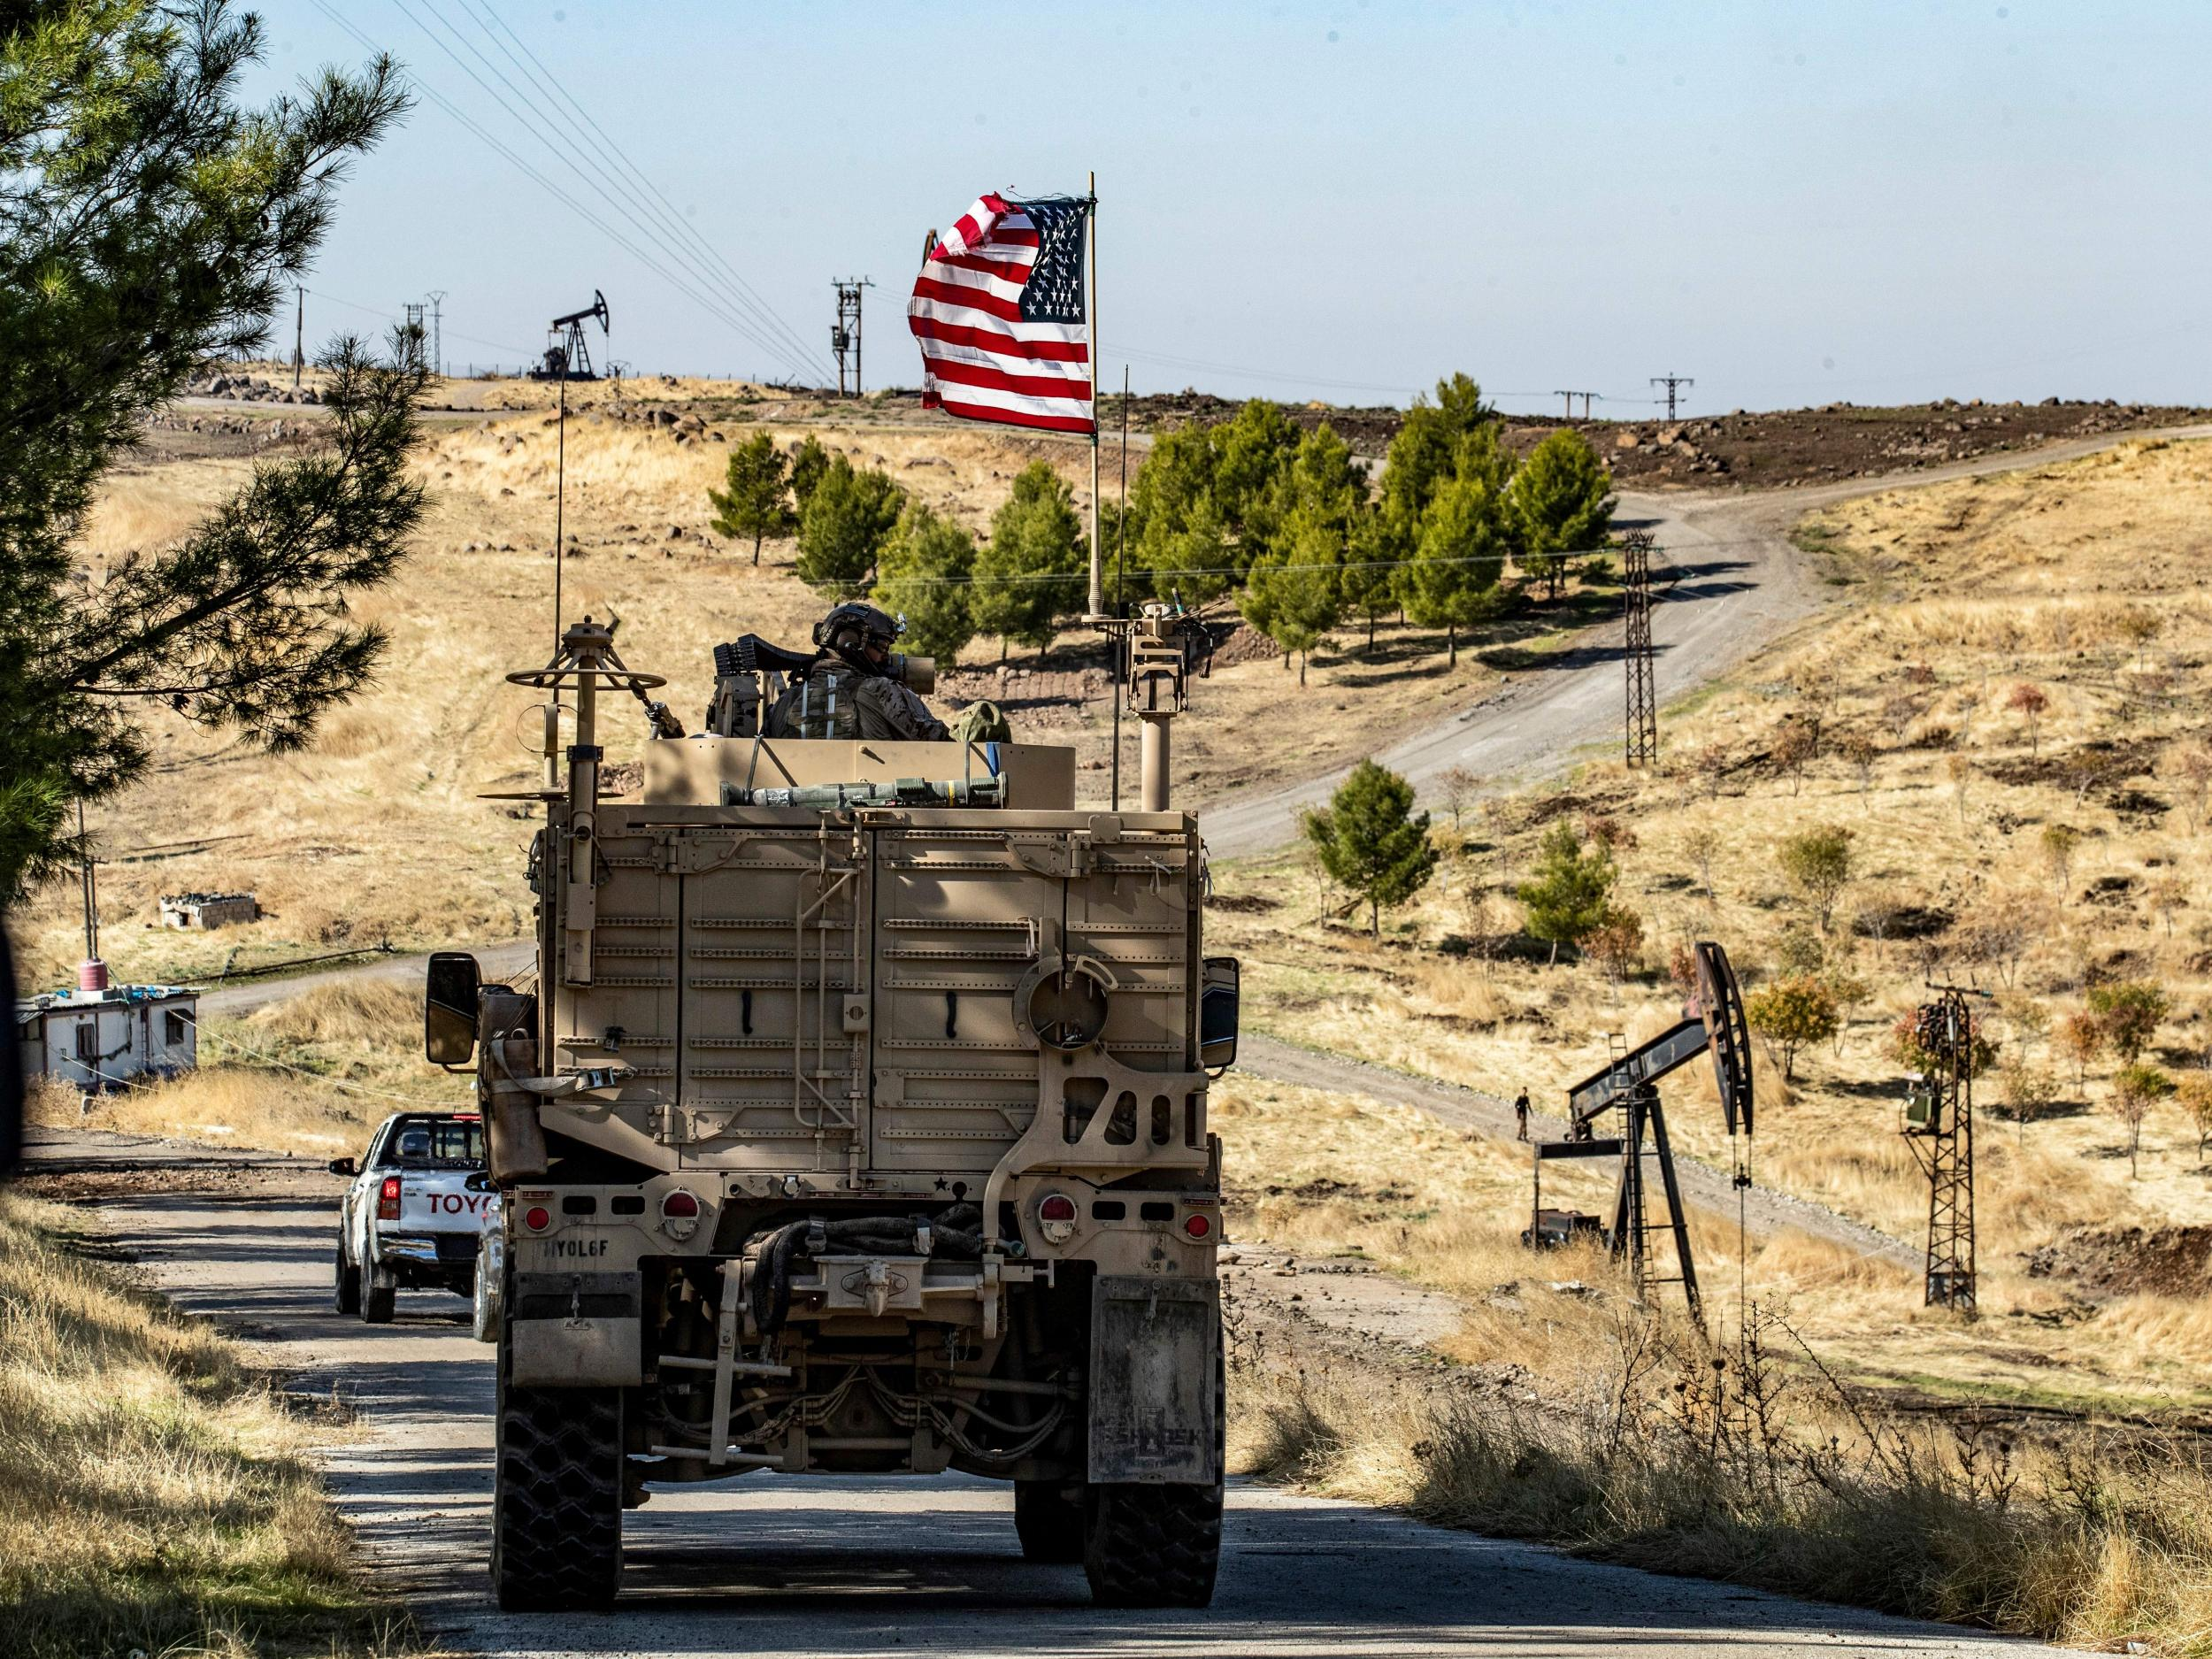 Trump doubles down on threat to take oil from Syria